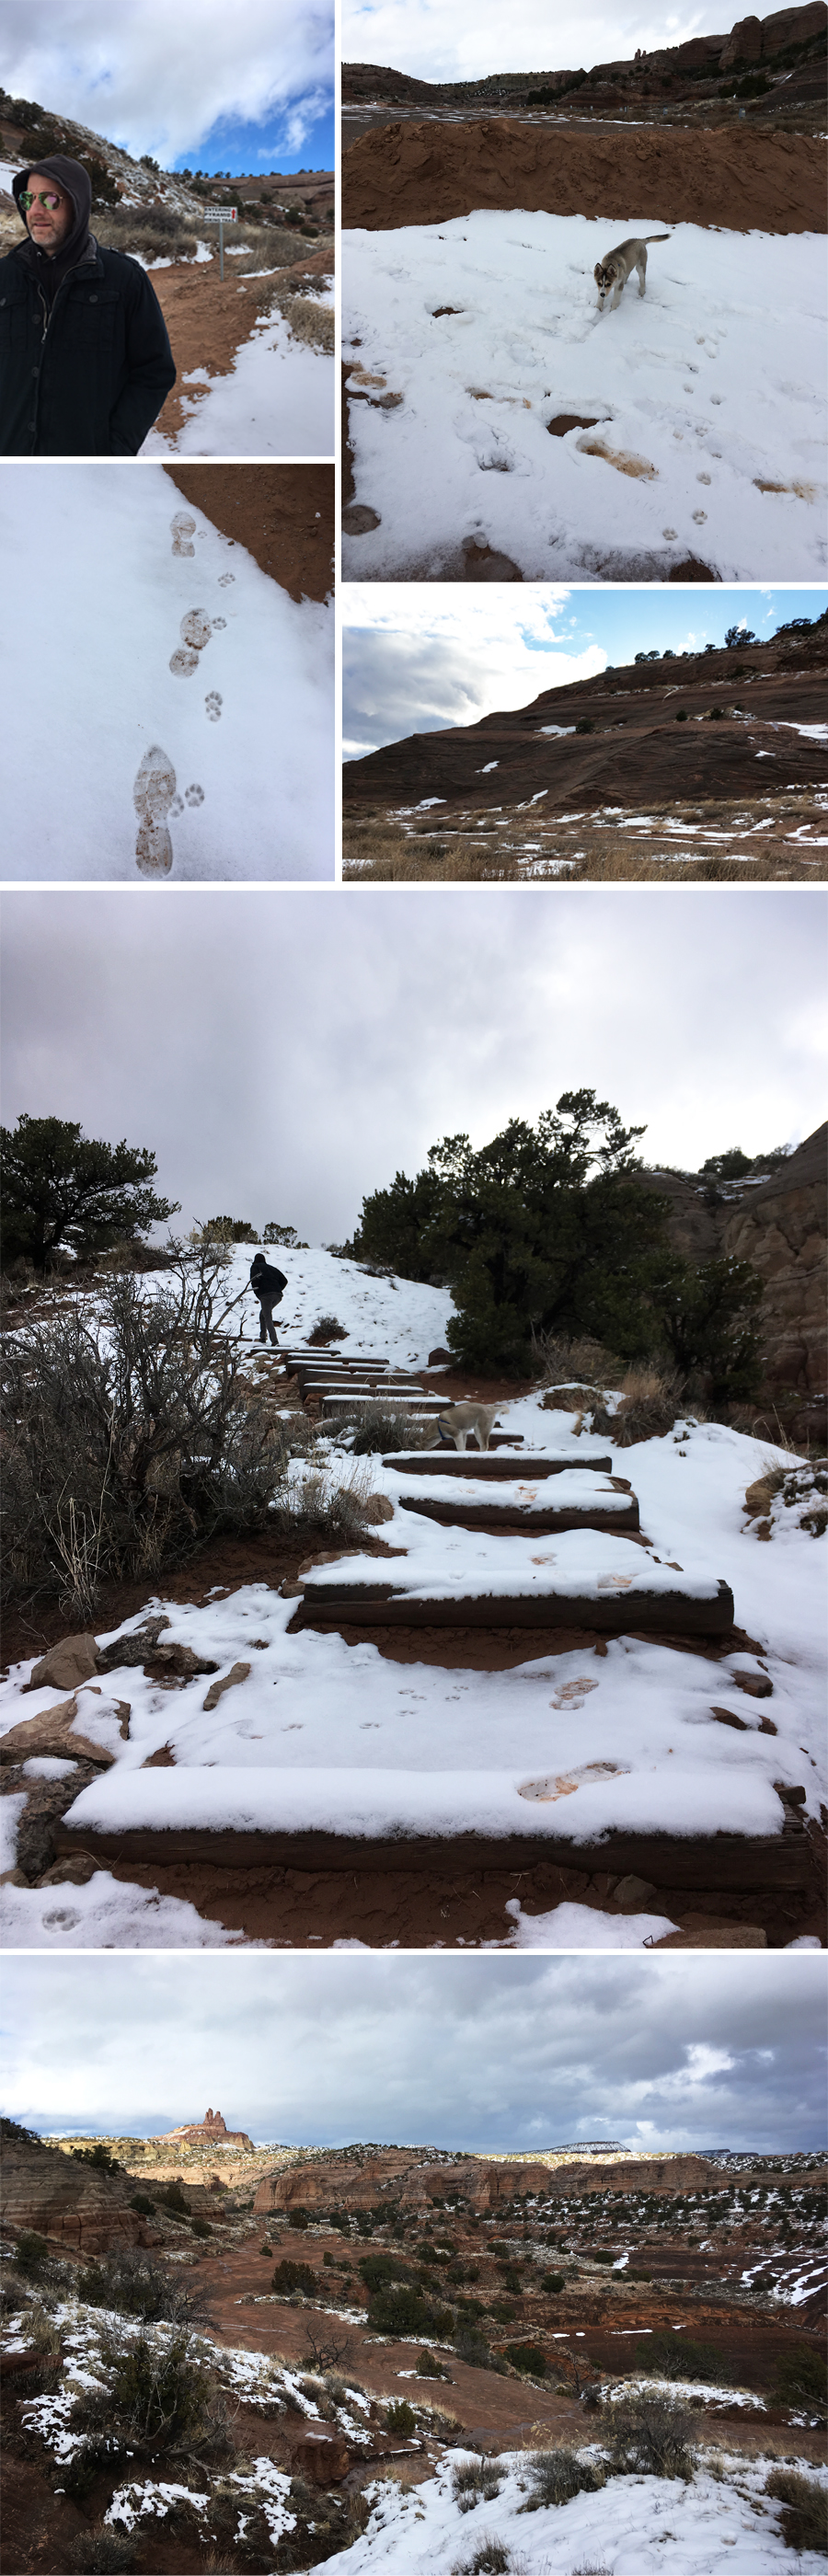 Pyramid Hiking Trail_New Mexico